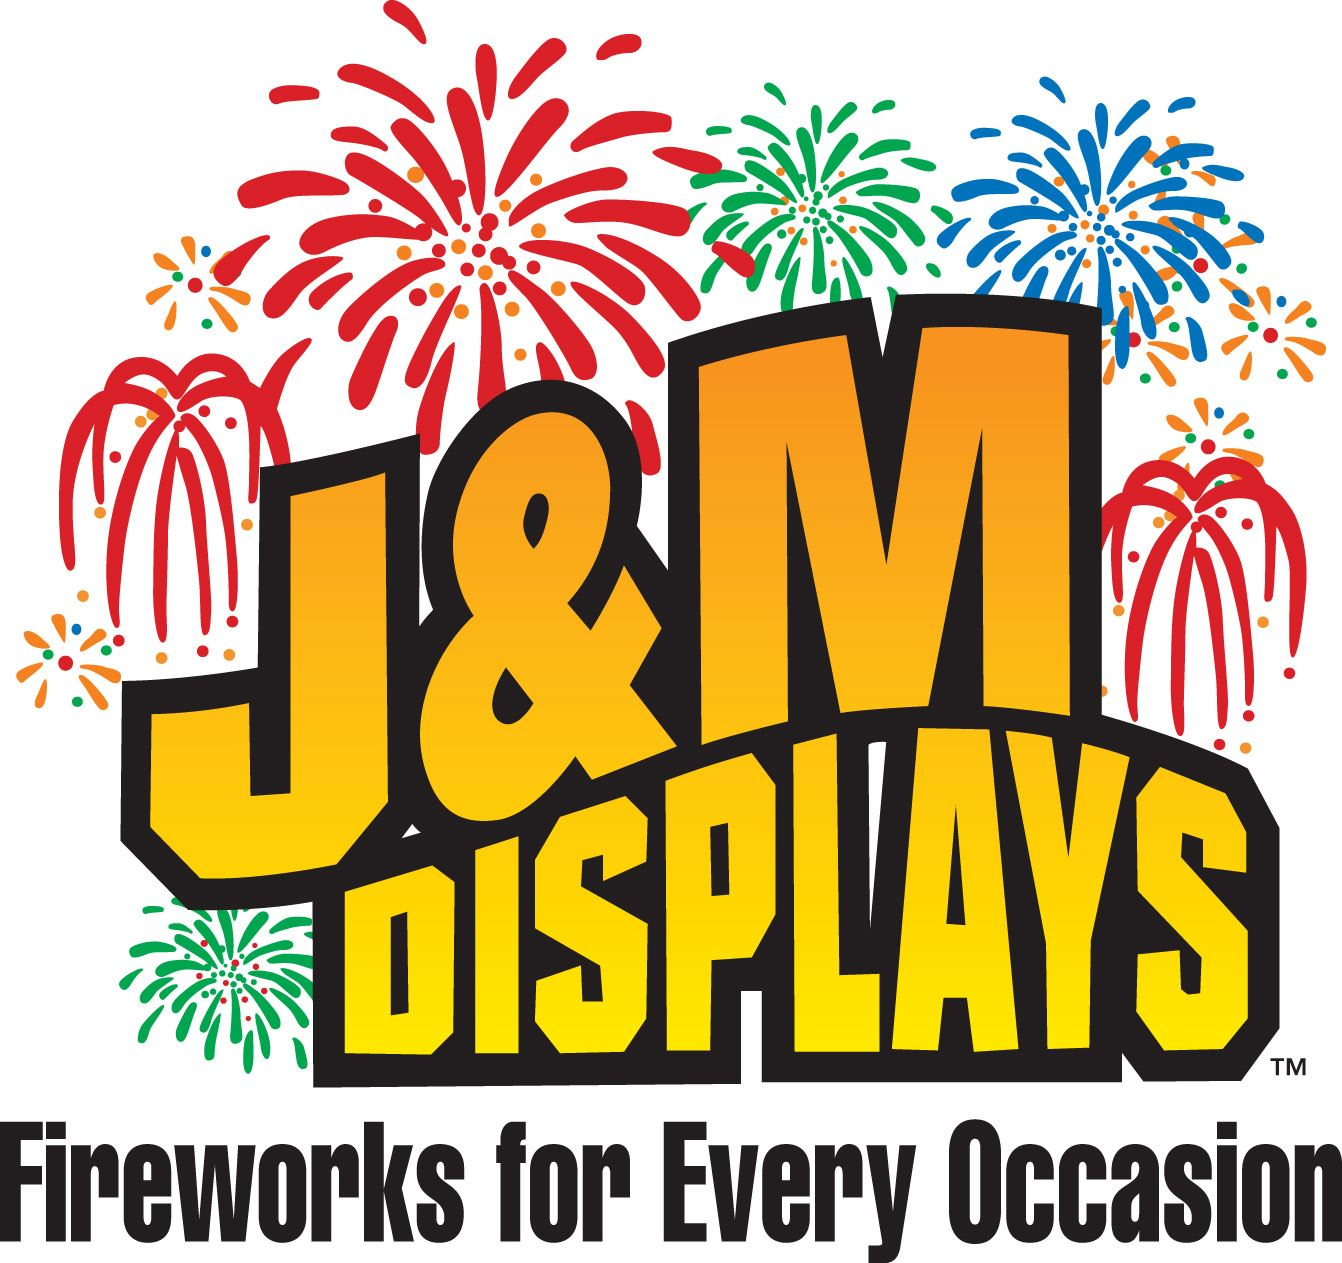 J and M Displays Fireworks for Every Occasion advertising sign